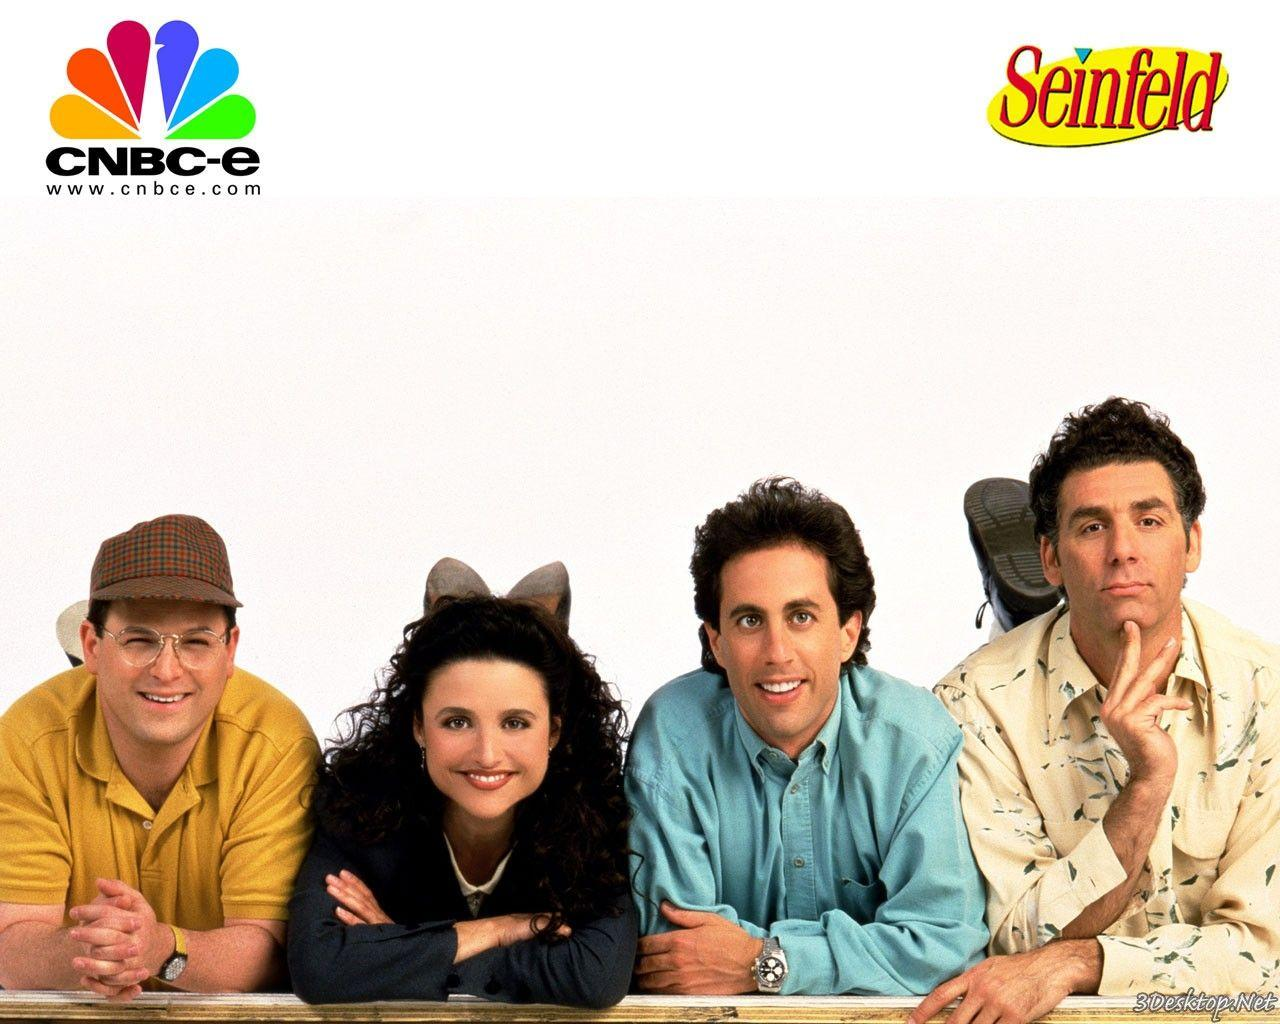 Seinfeld Wallpapers, Seinfeld Image for Desktop